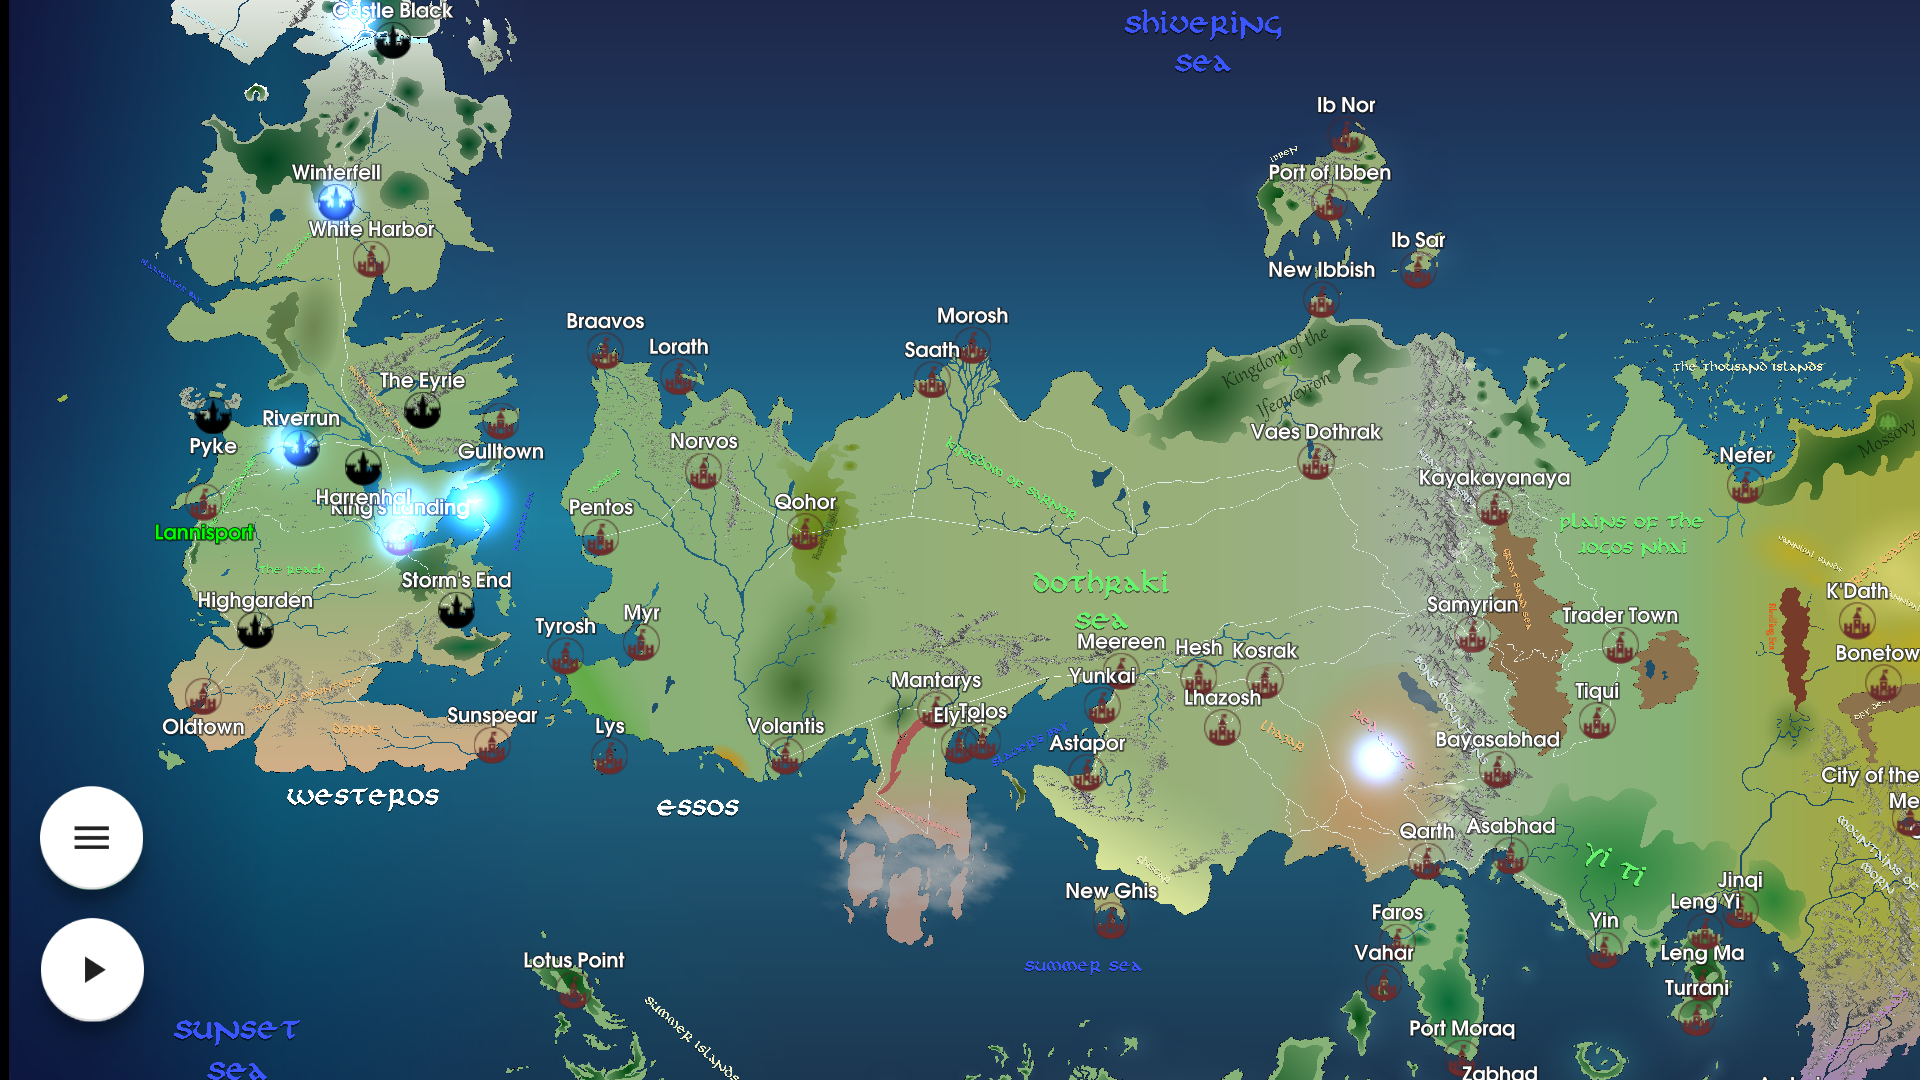 Map for Game of Thrones